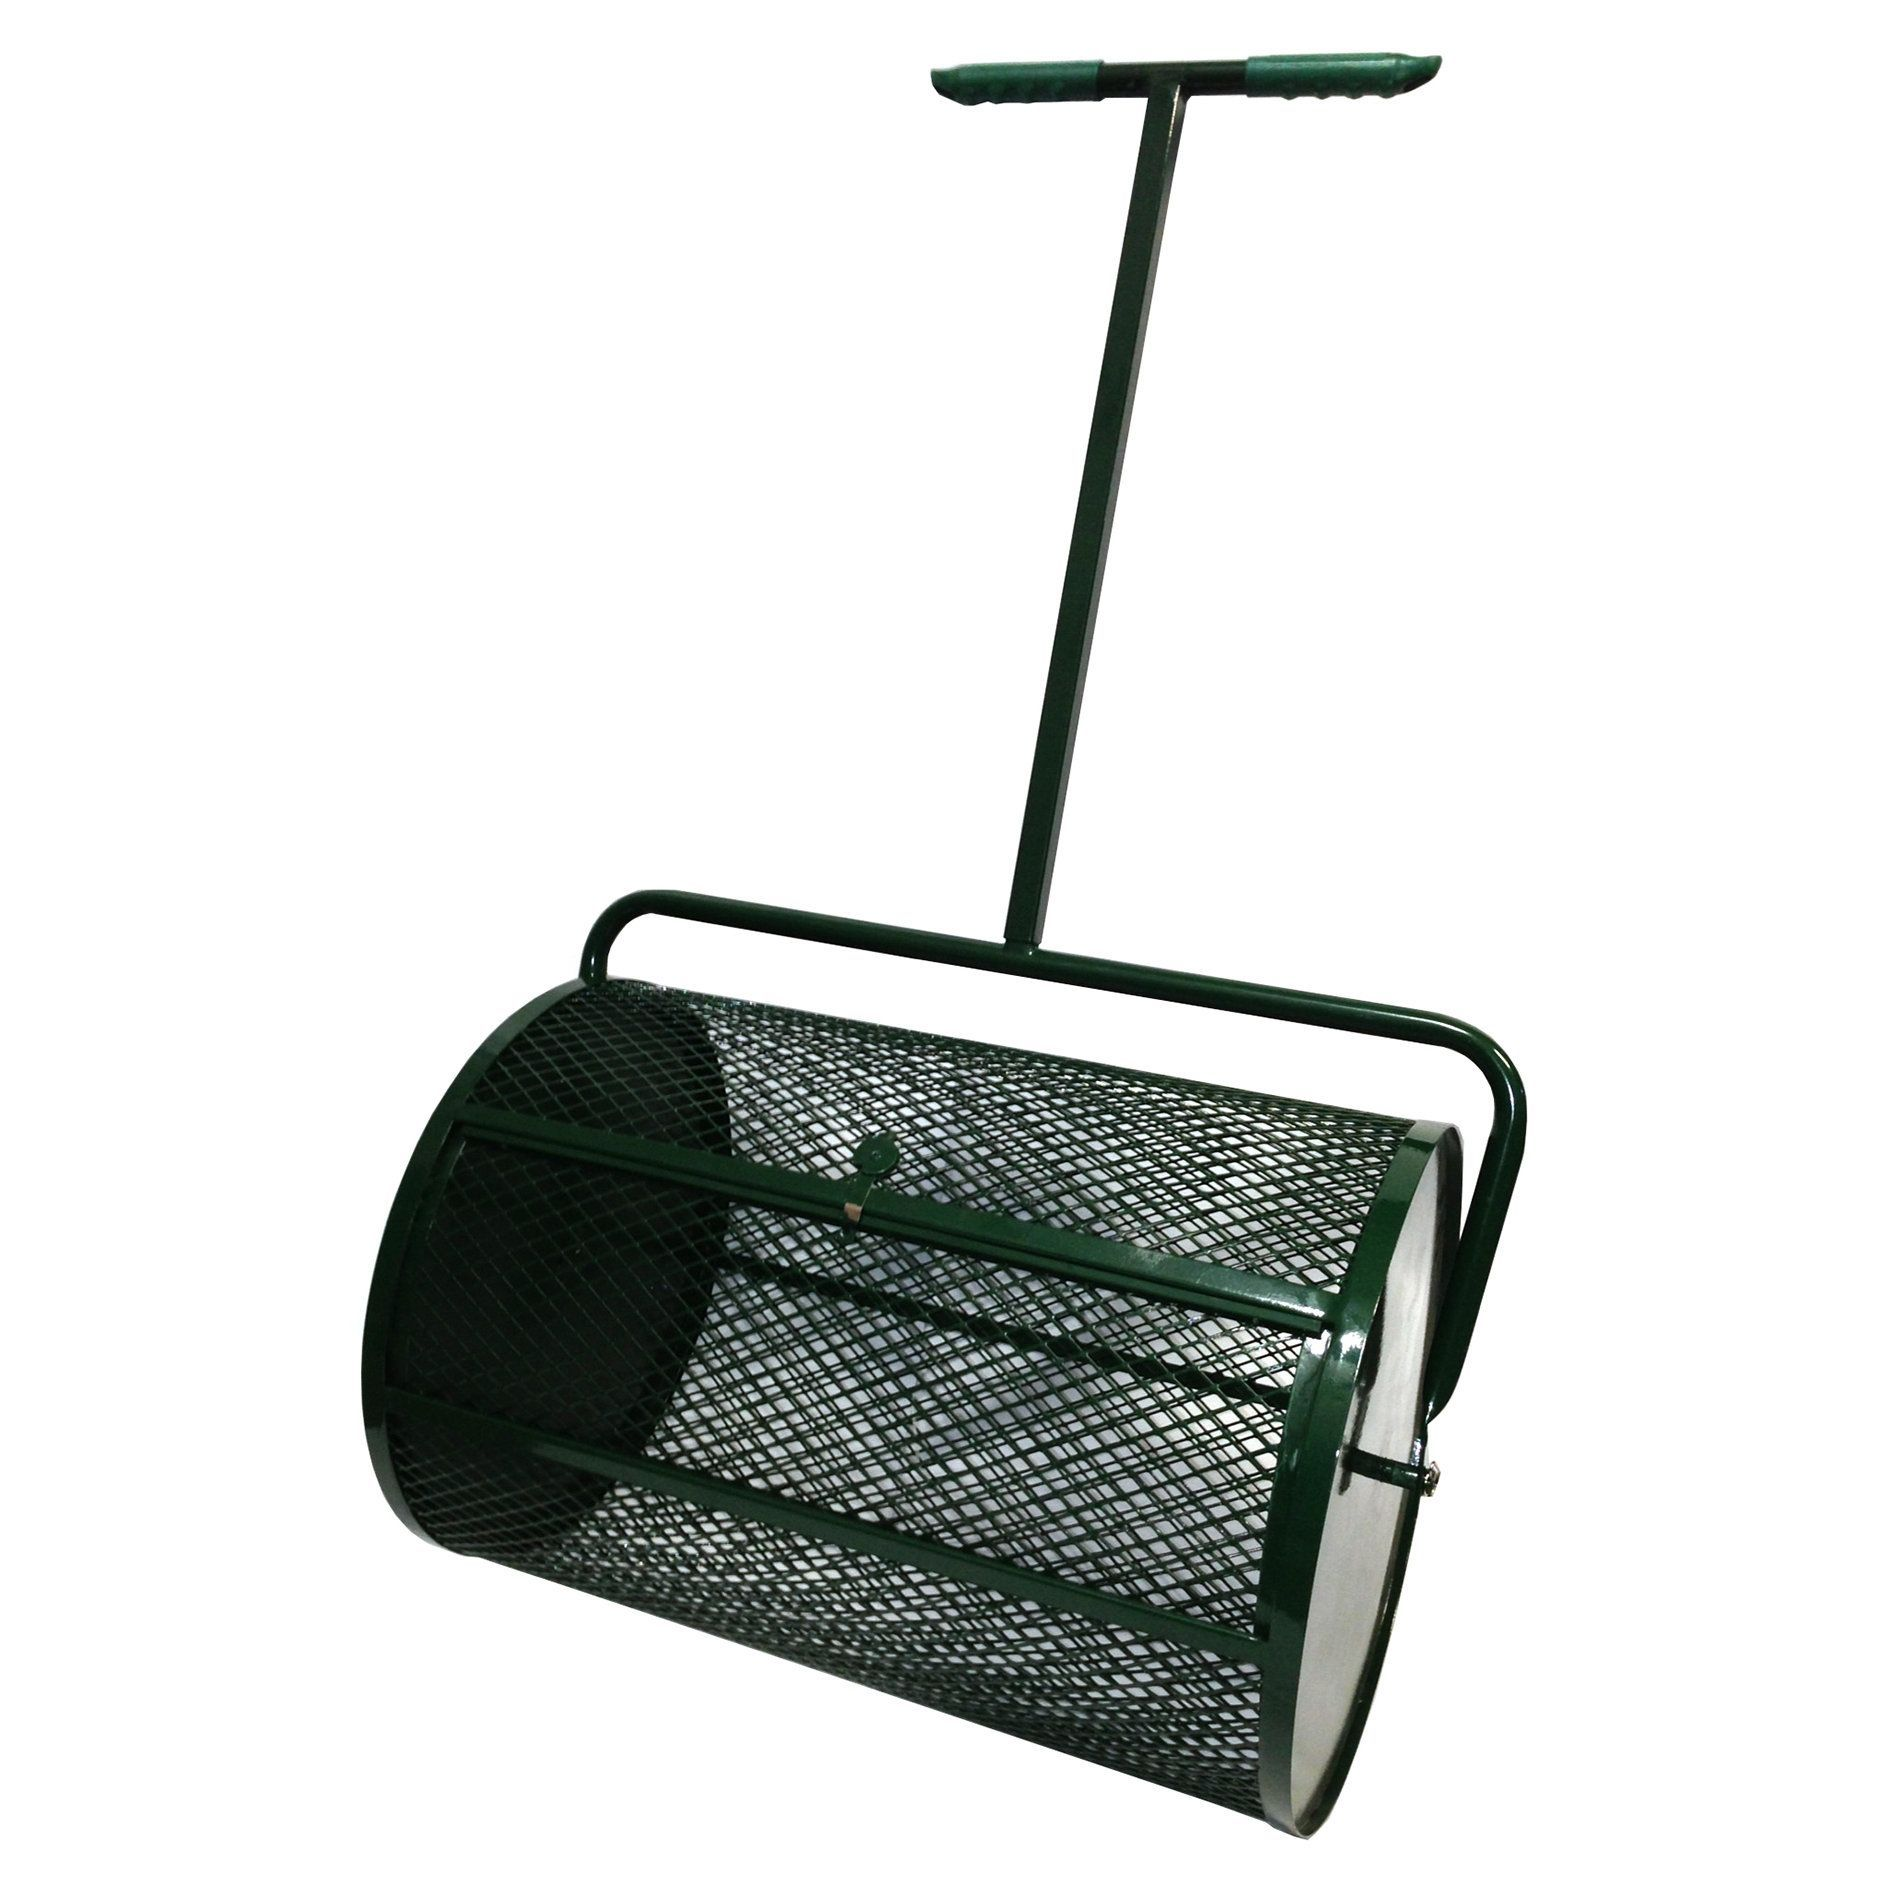 Peak Seasons G80024 18 inches x 24 Inches Compost Spreader